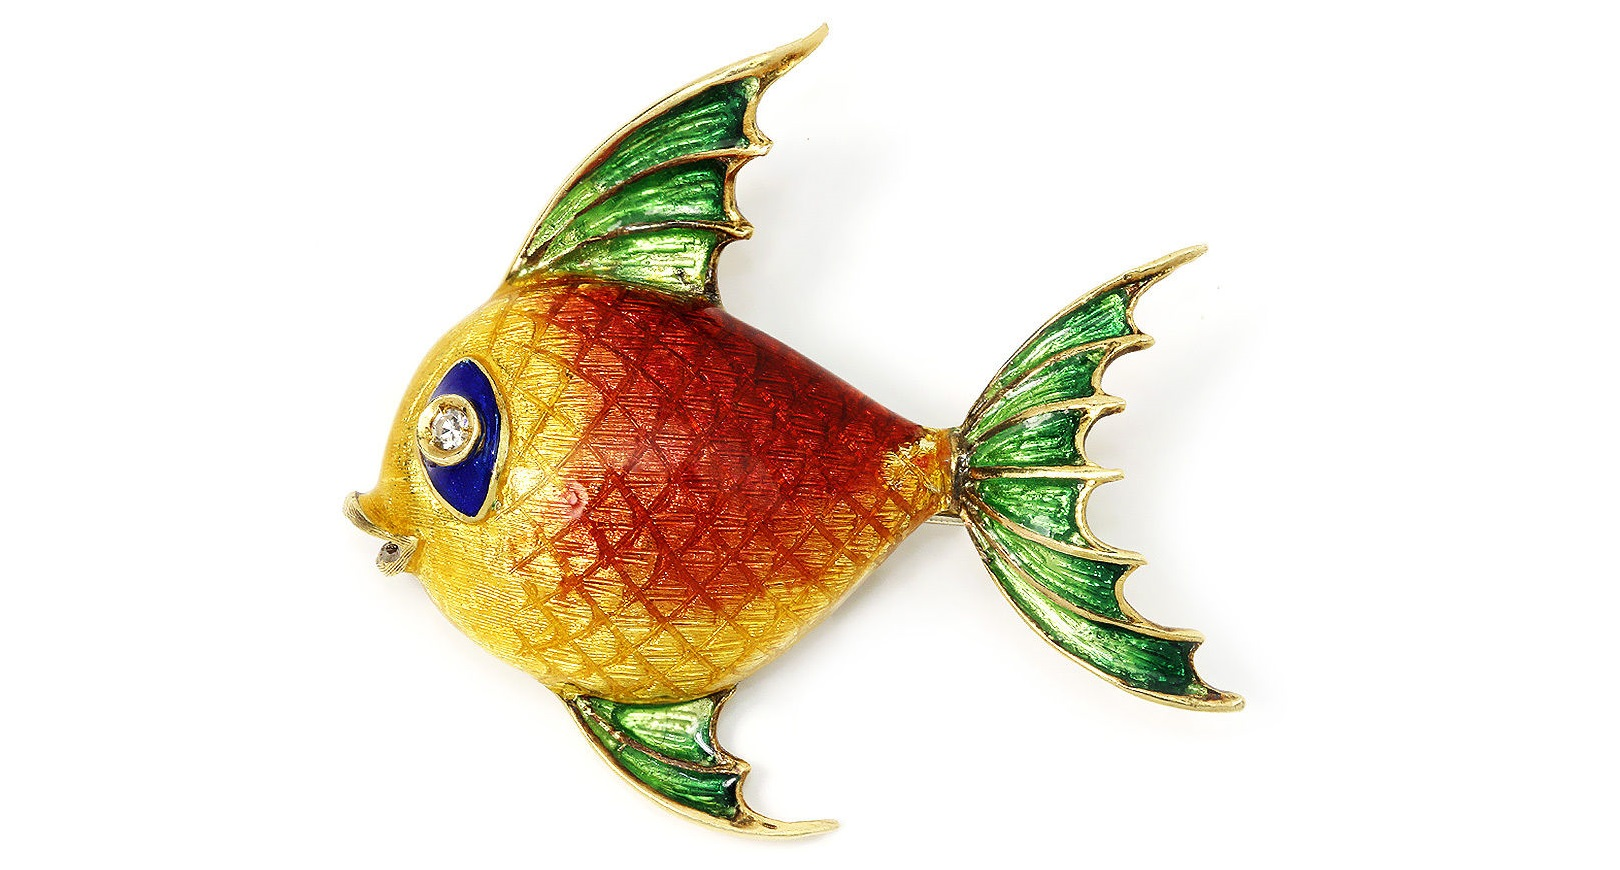 Vintage Fish Brooch Pin with Single Cut Diamond in 18kt Yellow Gold & Multi-Color Enamel